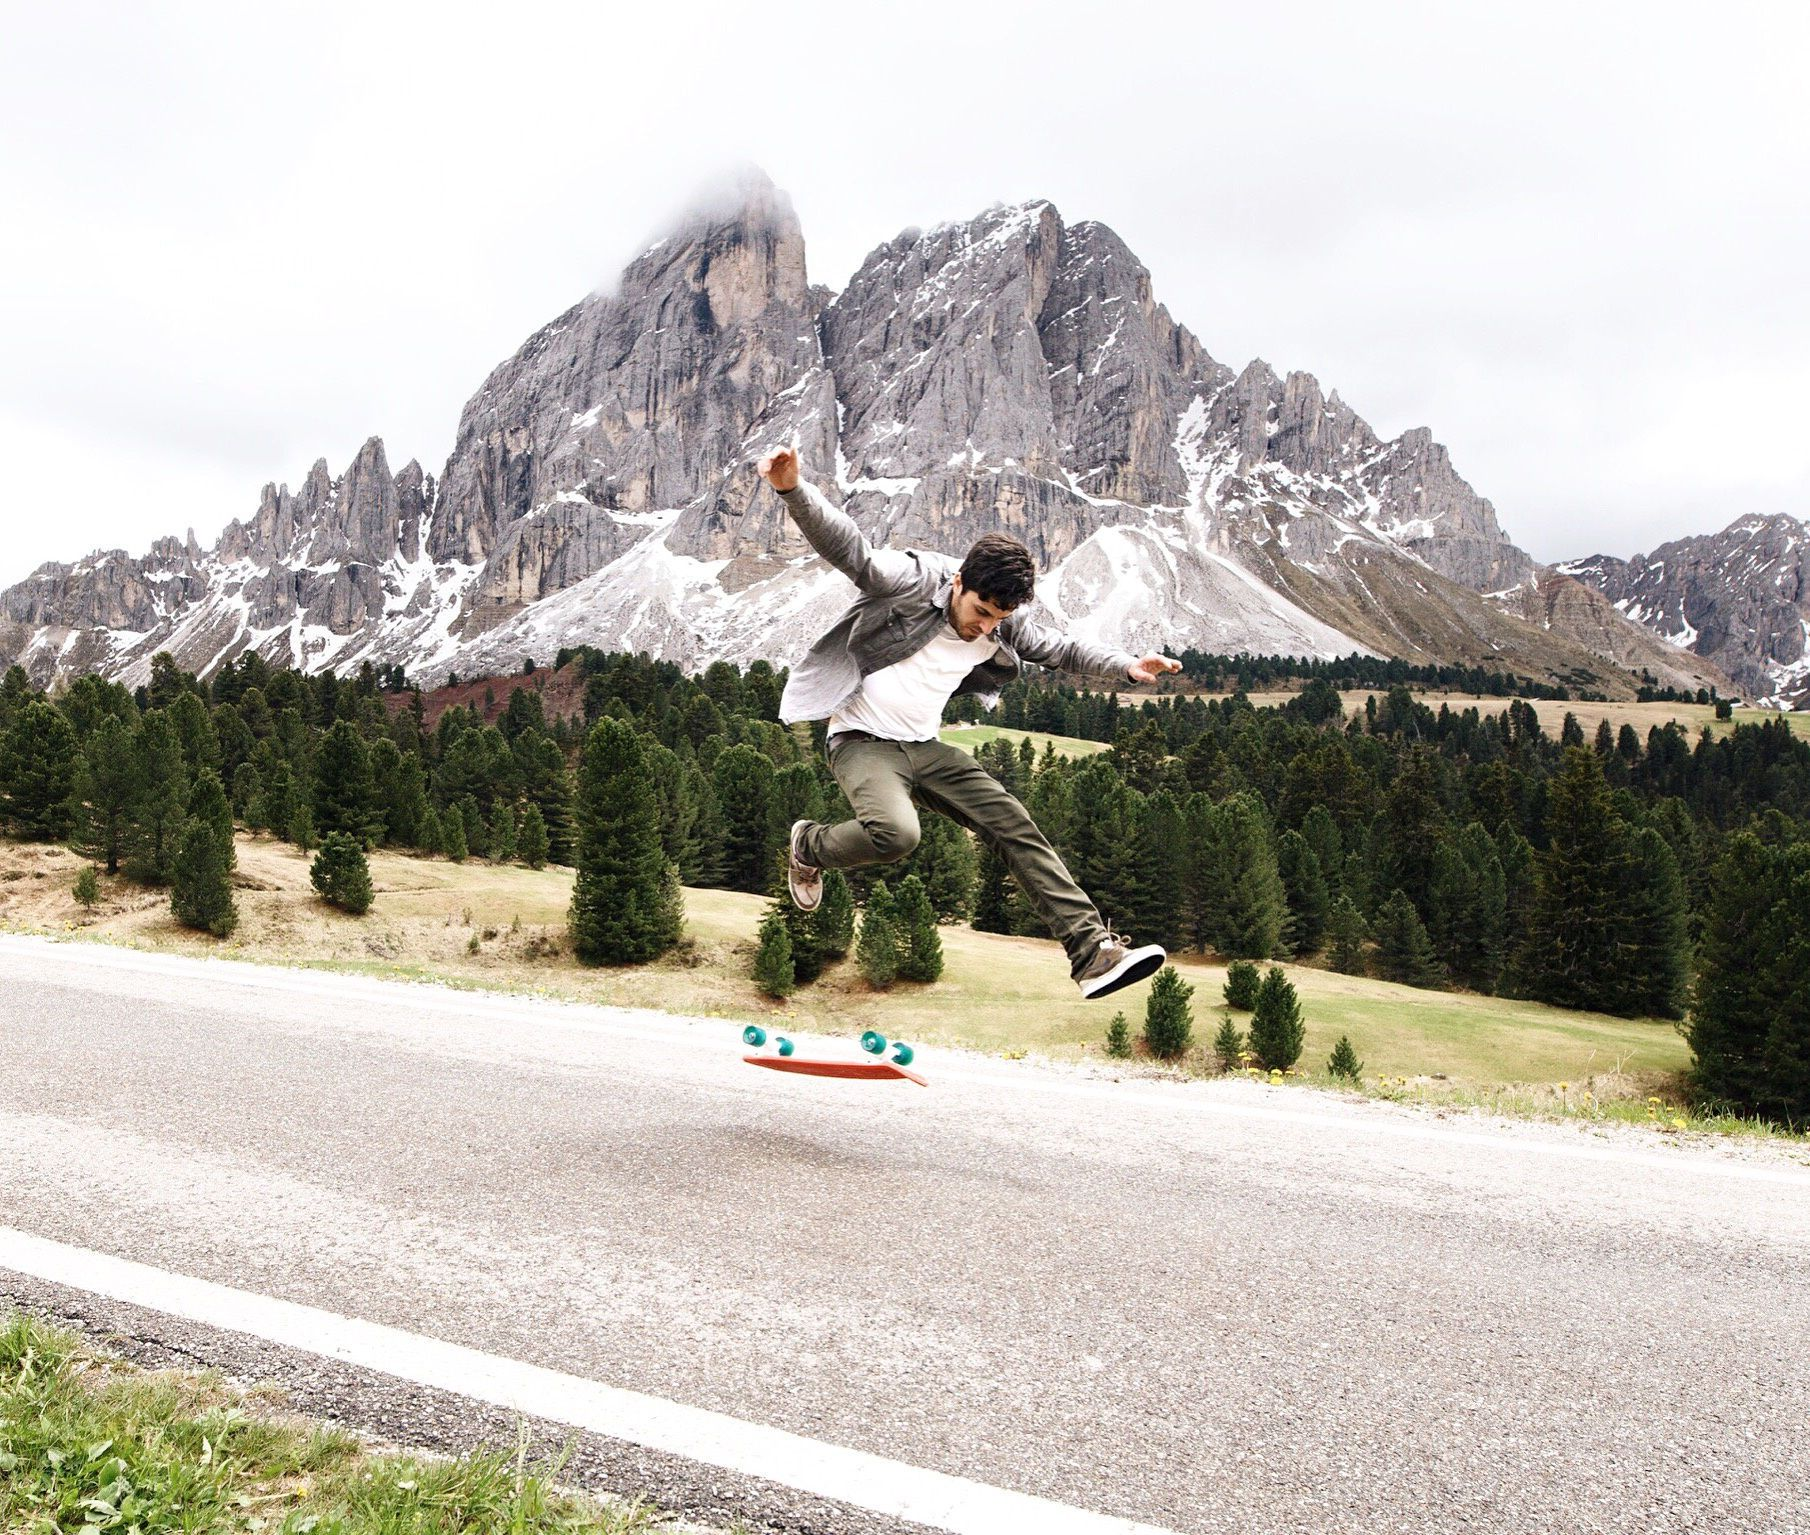 360 flip in the Dolomites  Landscapes photo by Lyes http://rarme.com/?F9gZi